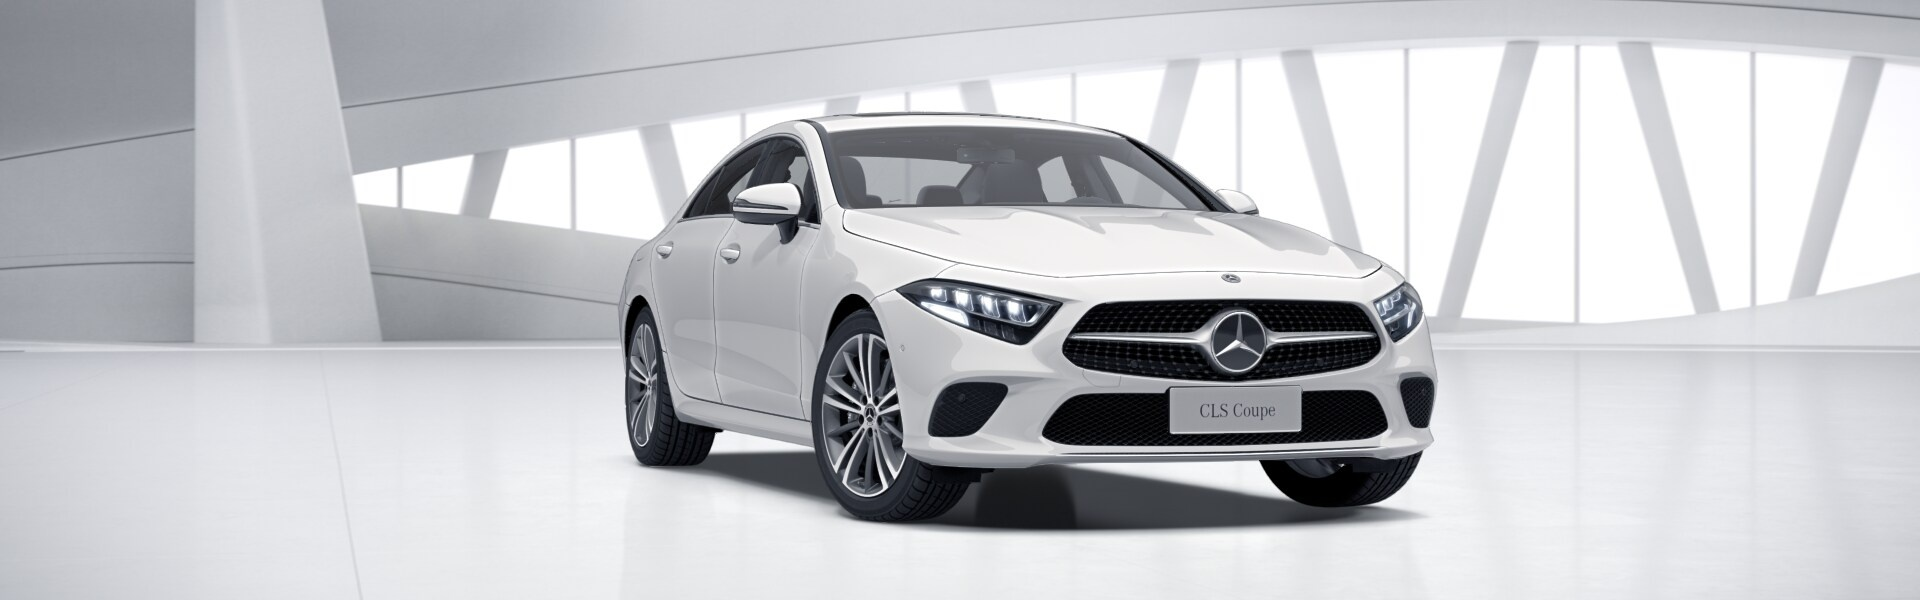 2020-mercedes-benz-cls-260-china-9.jpg